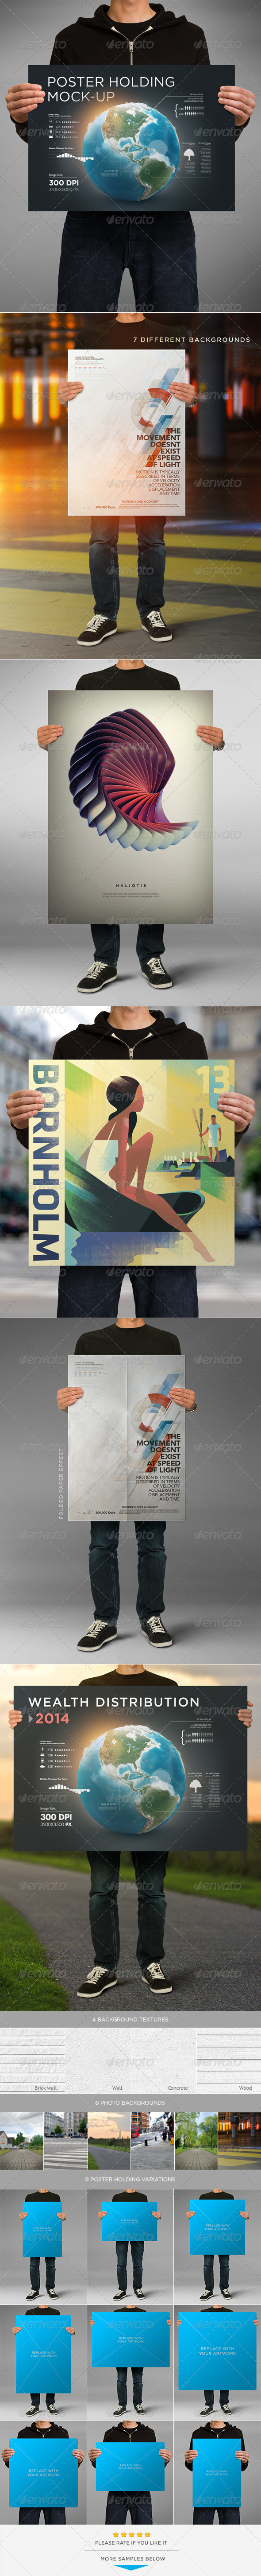 Poster Holding Mock-up - Posters Print